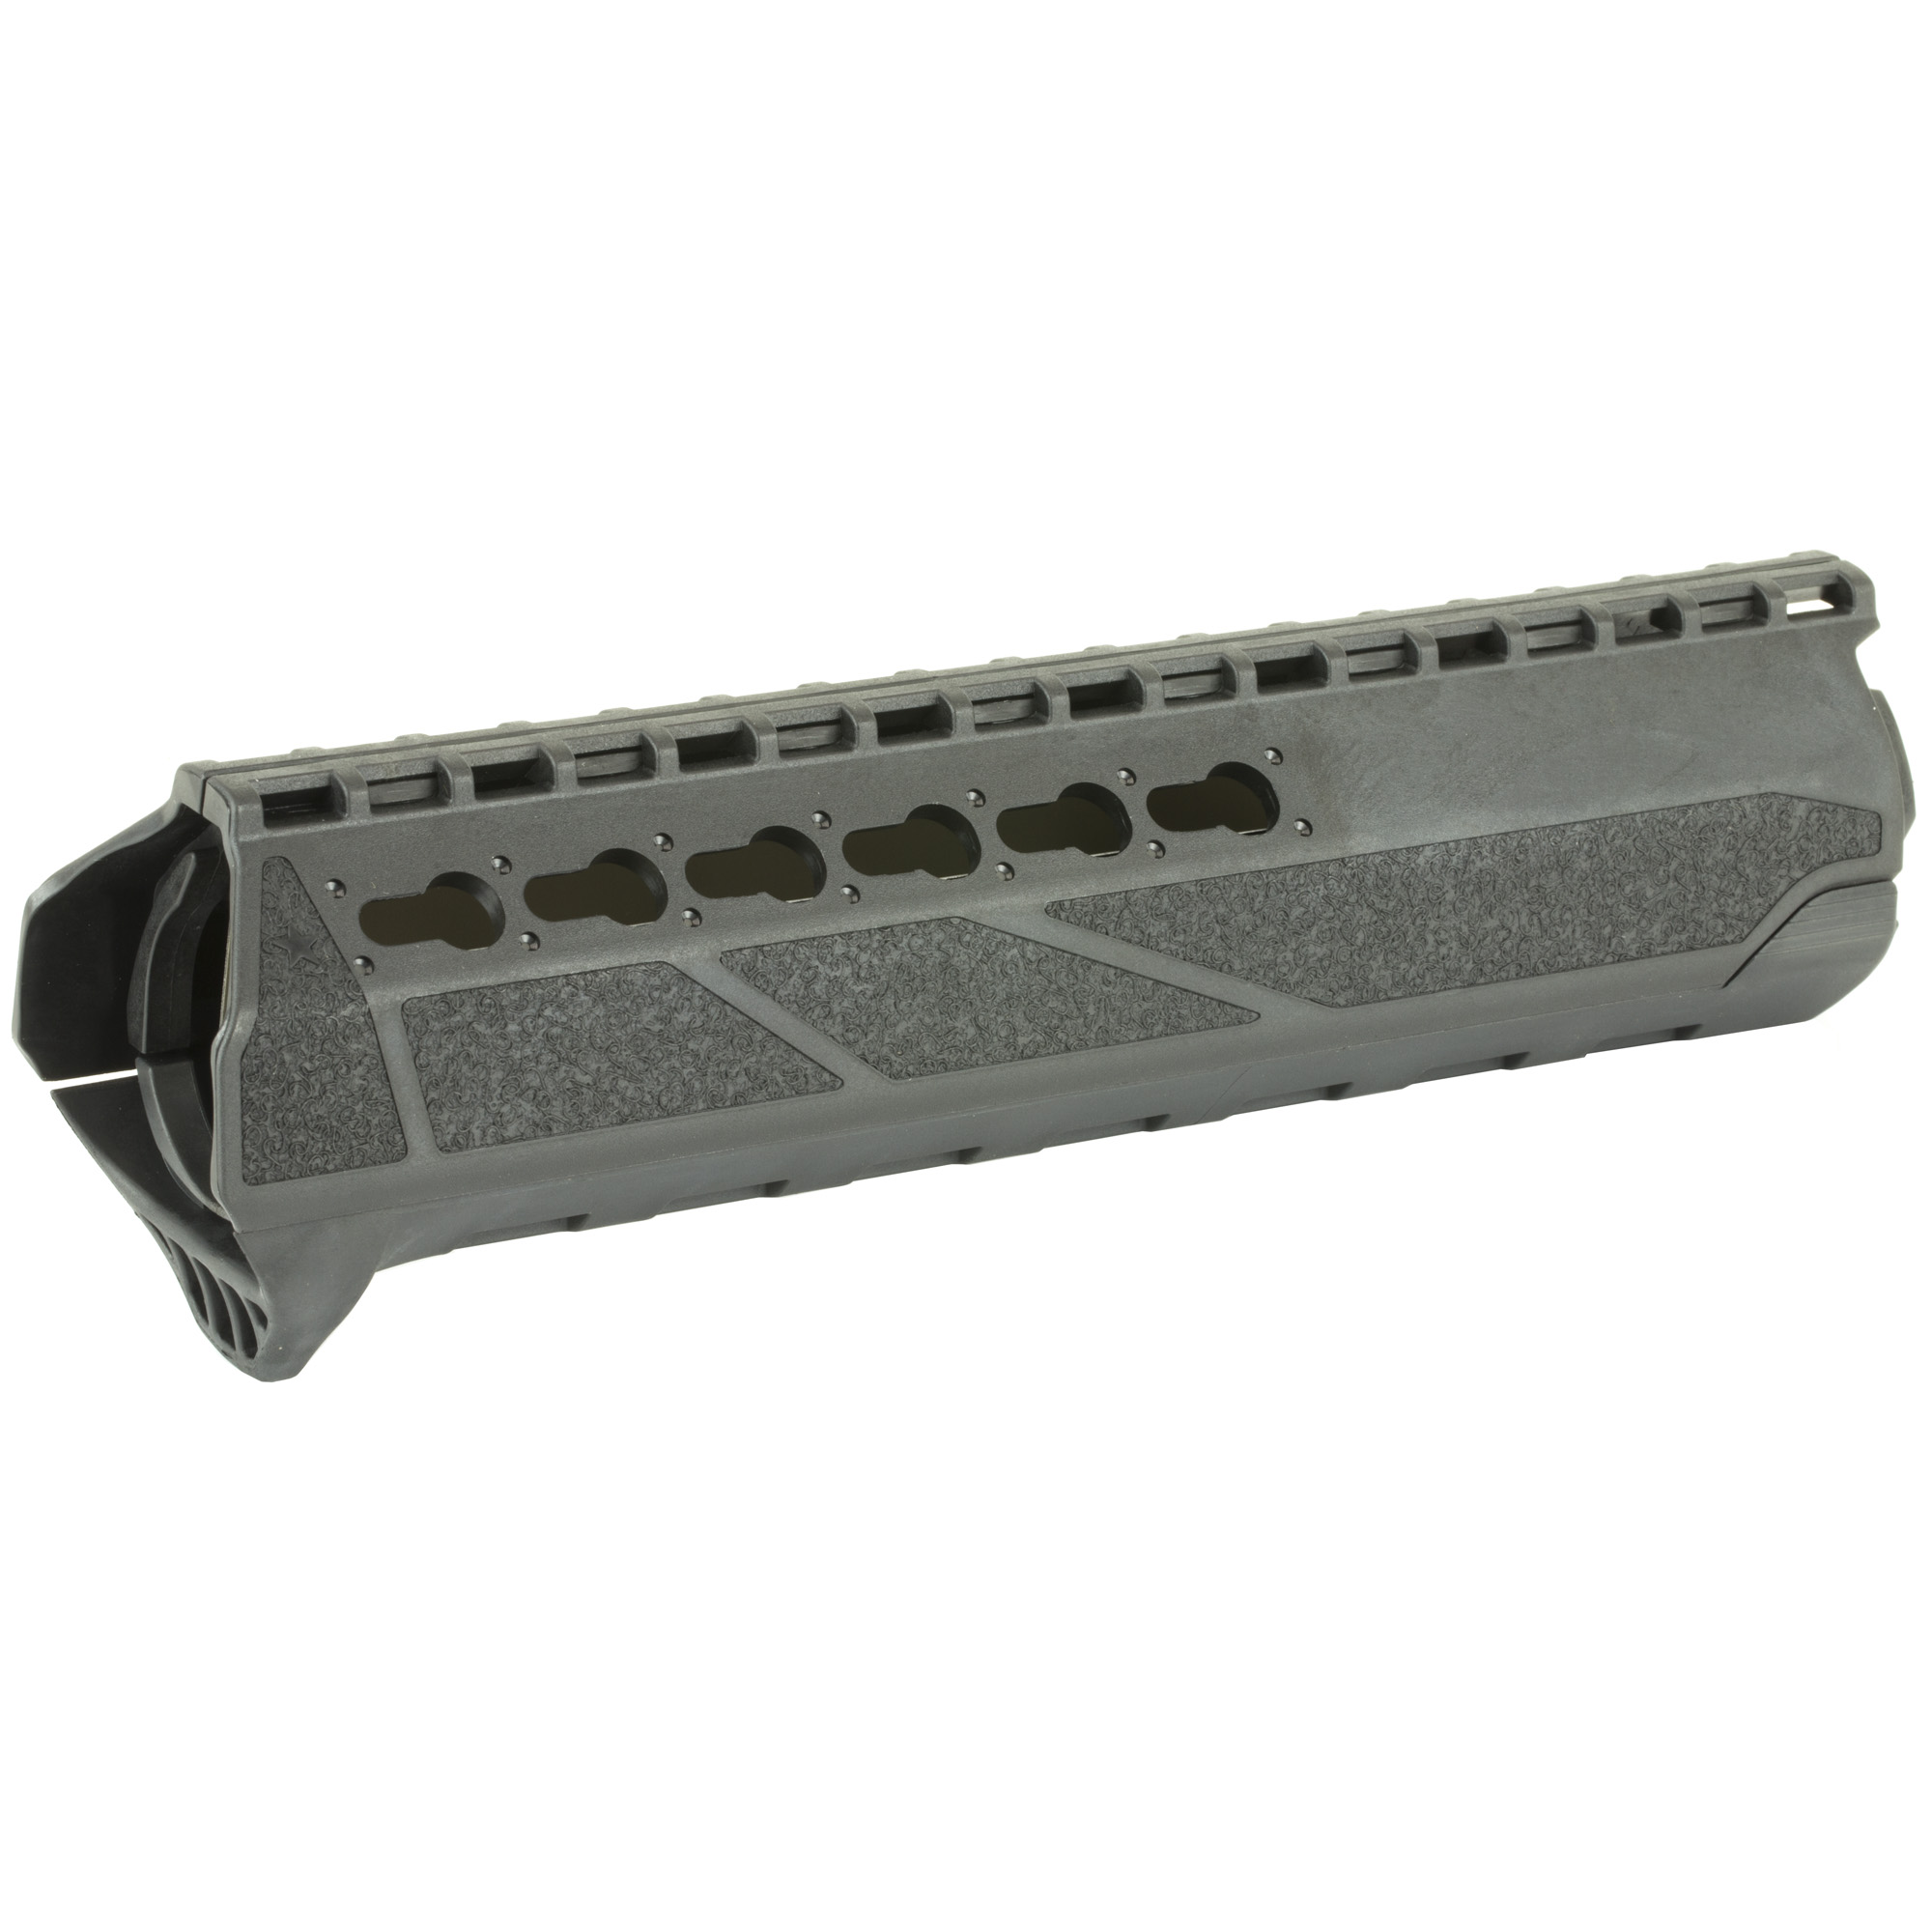 """Bravo Company's BCMGUNFIGHTER PKMR (Polymer KeyMod Rail) Mid Length is a direct replacement handguard featuring a simple drop in design. It is for AR15's with a mid-length gas system and mil-spec front sight base. With its natural ergonomics"""" it is slim"""" comfortable and lightweight. It has an aggressively textured area for enhanced traction and a reinforced KeyMod interface for durable accessory support. The aluminum heat shield reduces heat transfer to the handguard and shooters hand. Made in the USA."""